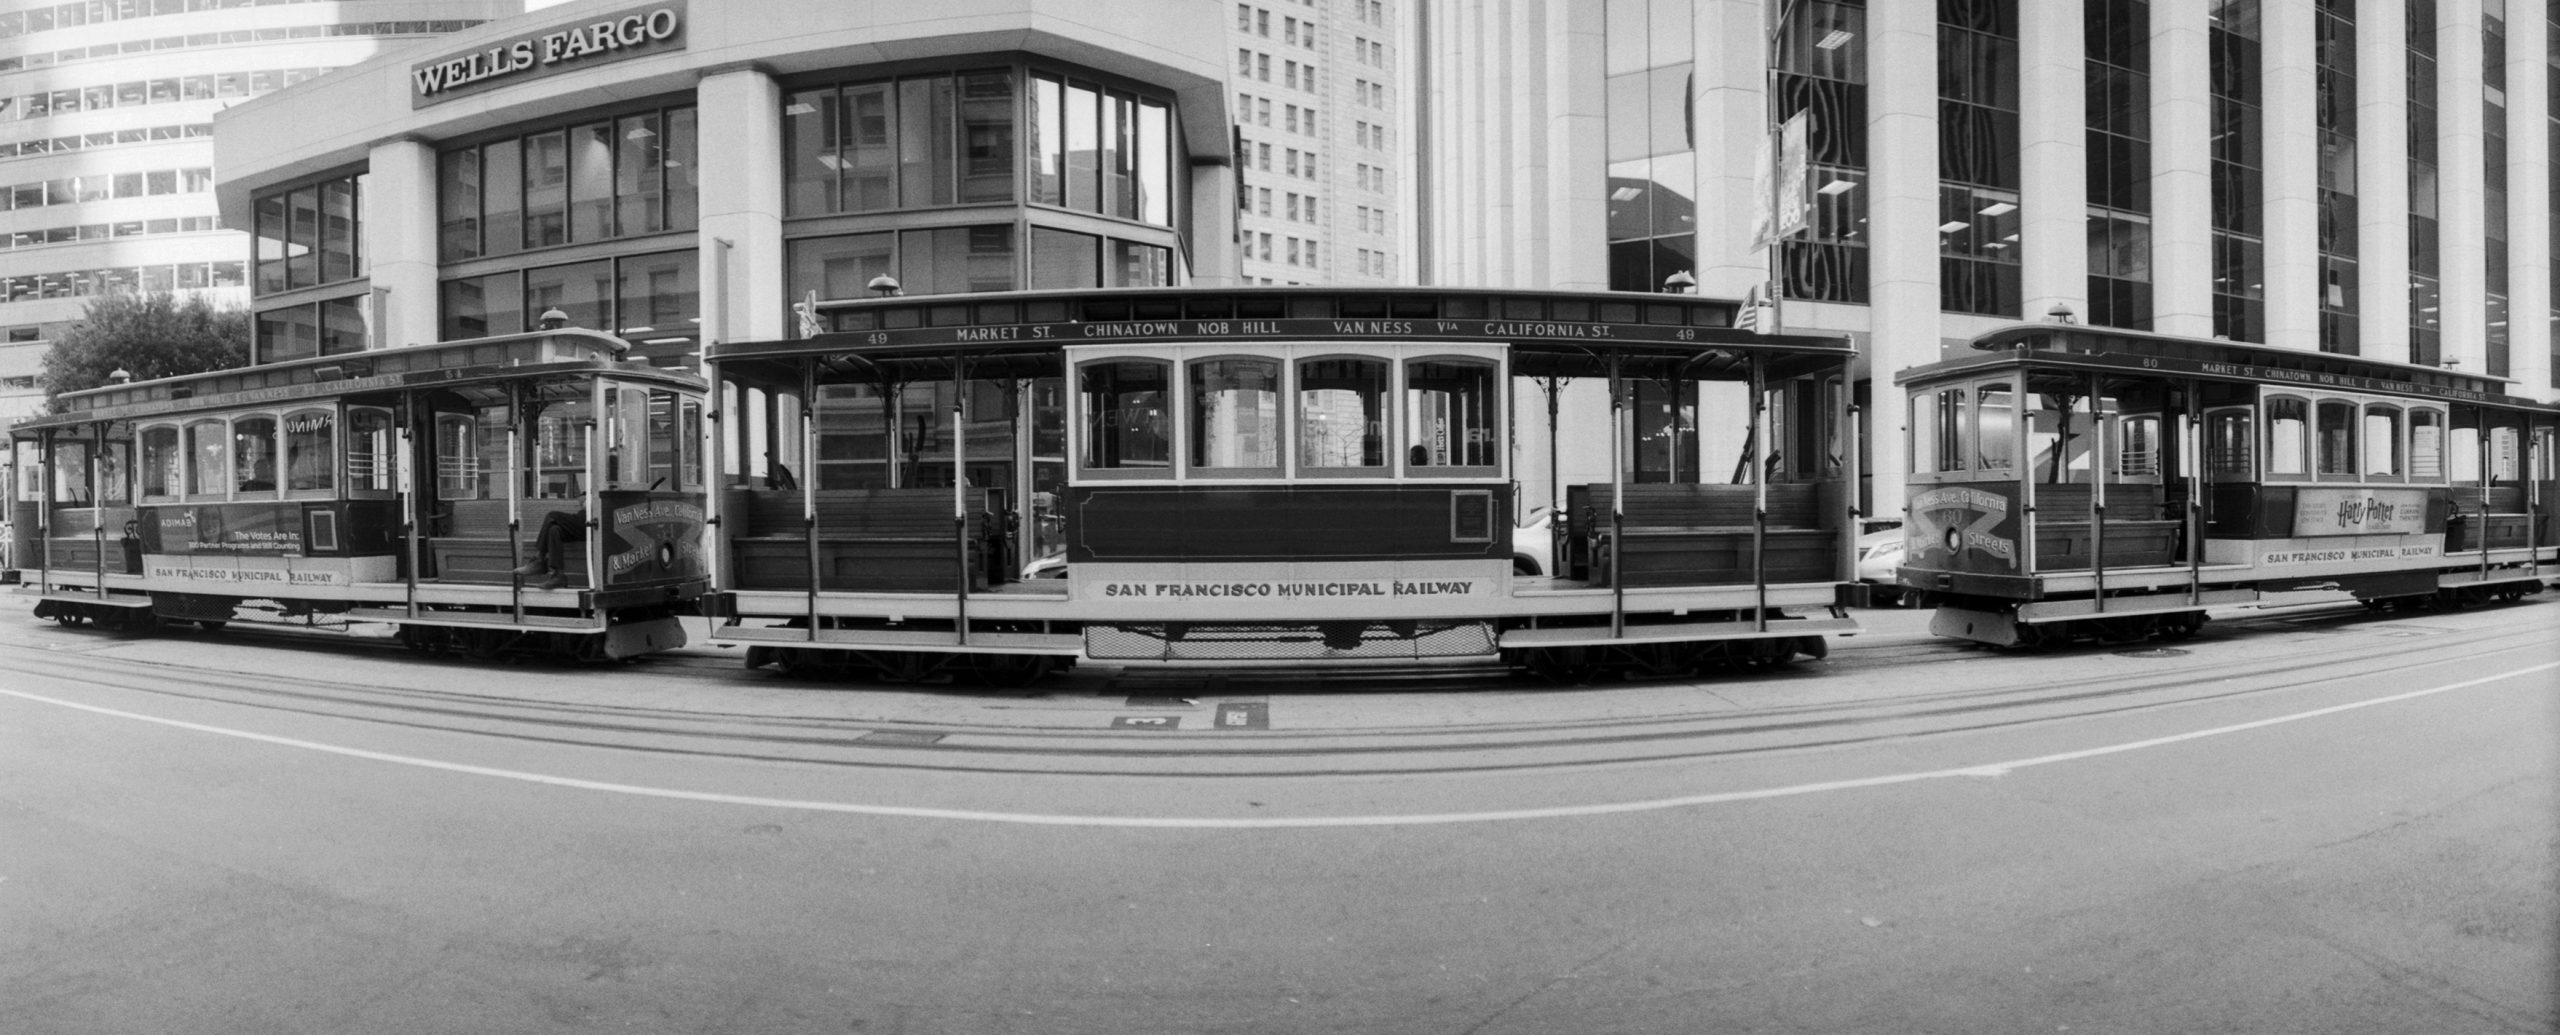 @klizana California St. Cable Car #believeinfilm #ilfordphoto #FP4 #fridayfavourites #panoramic #horizont